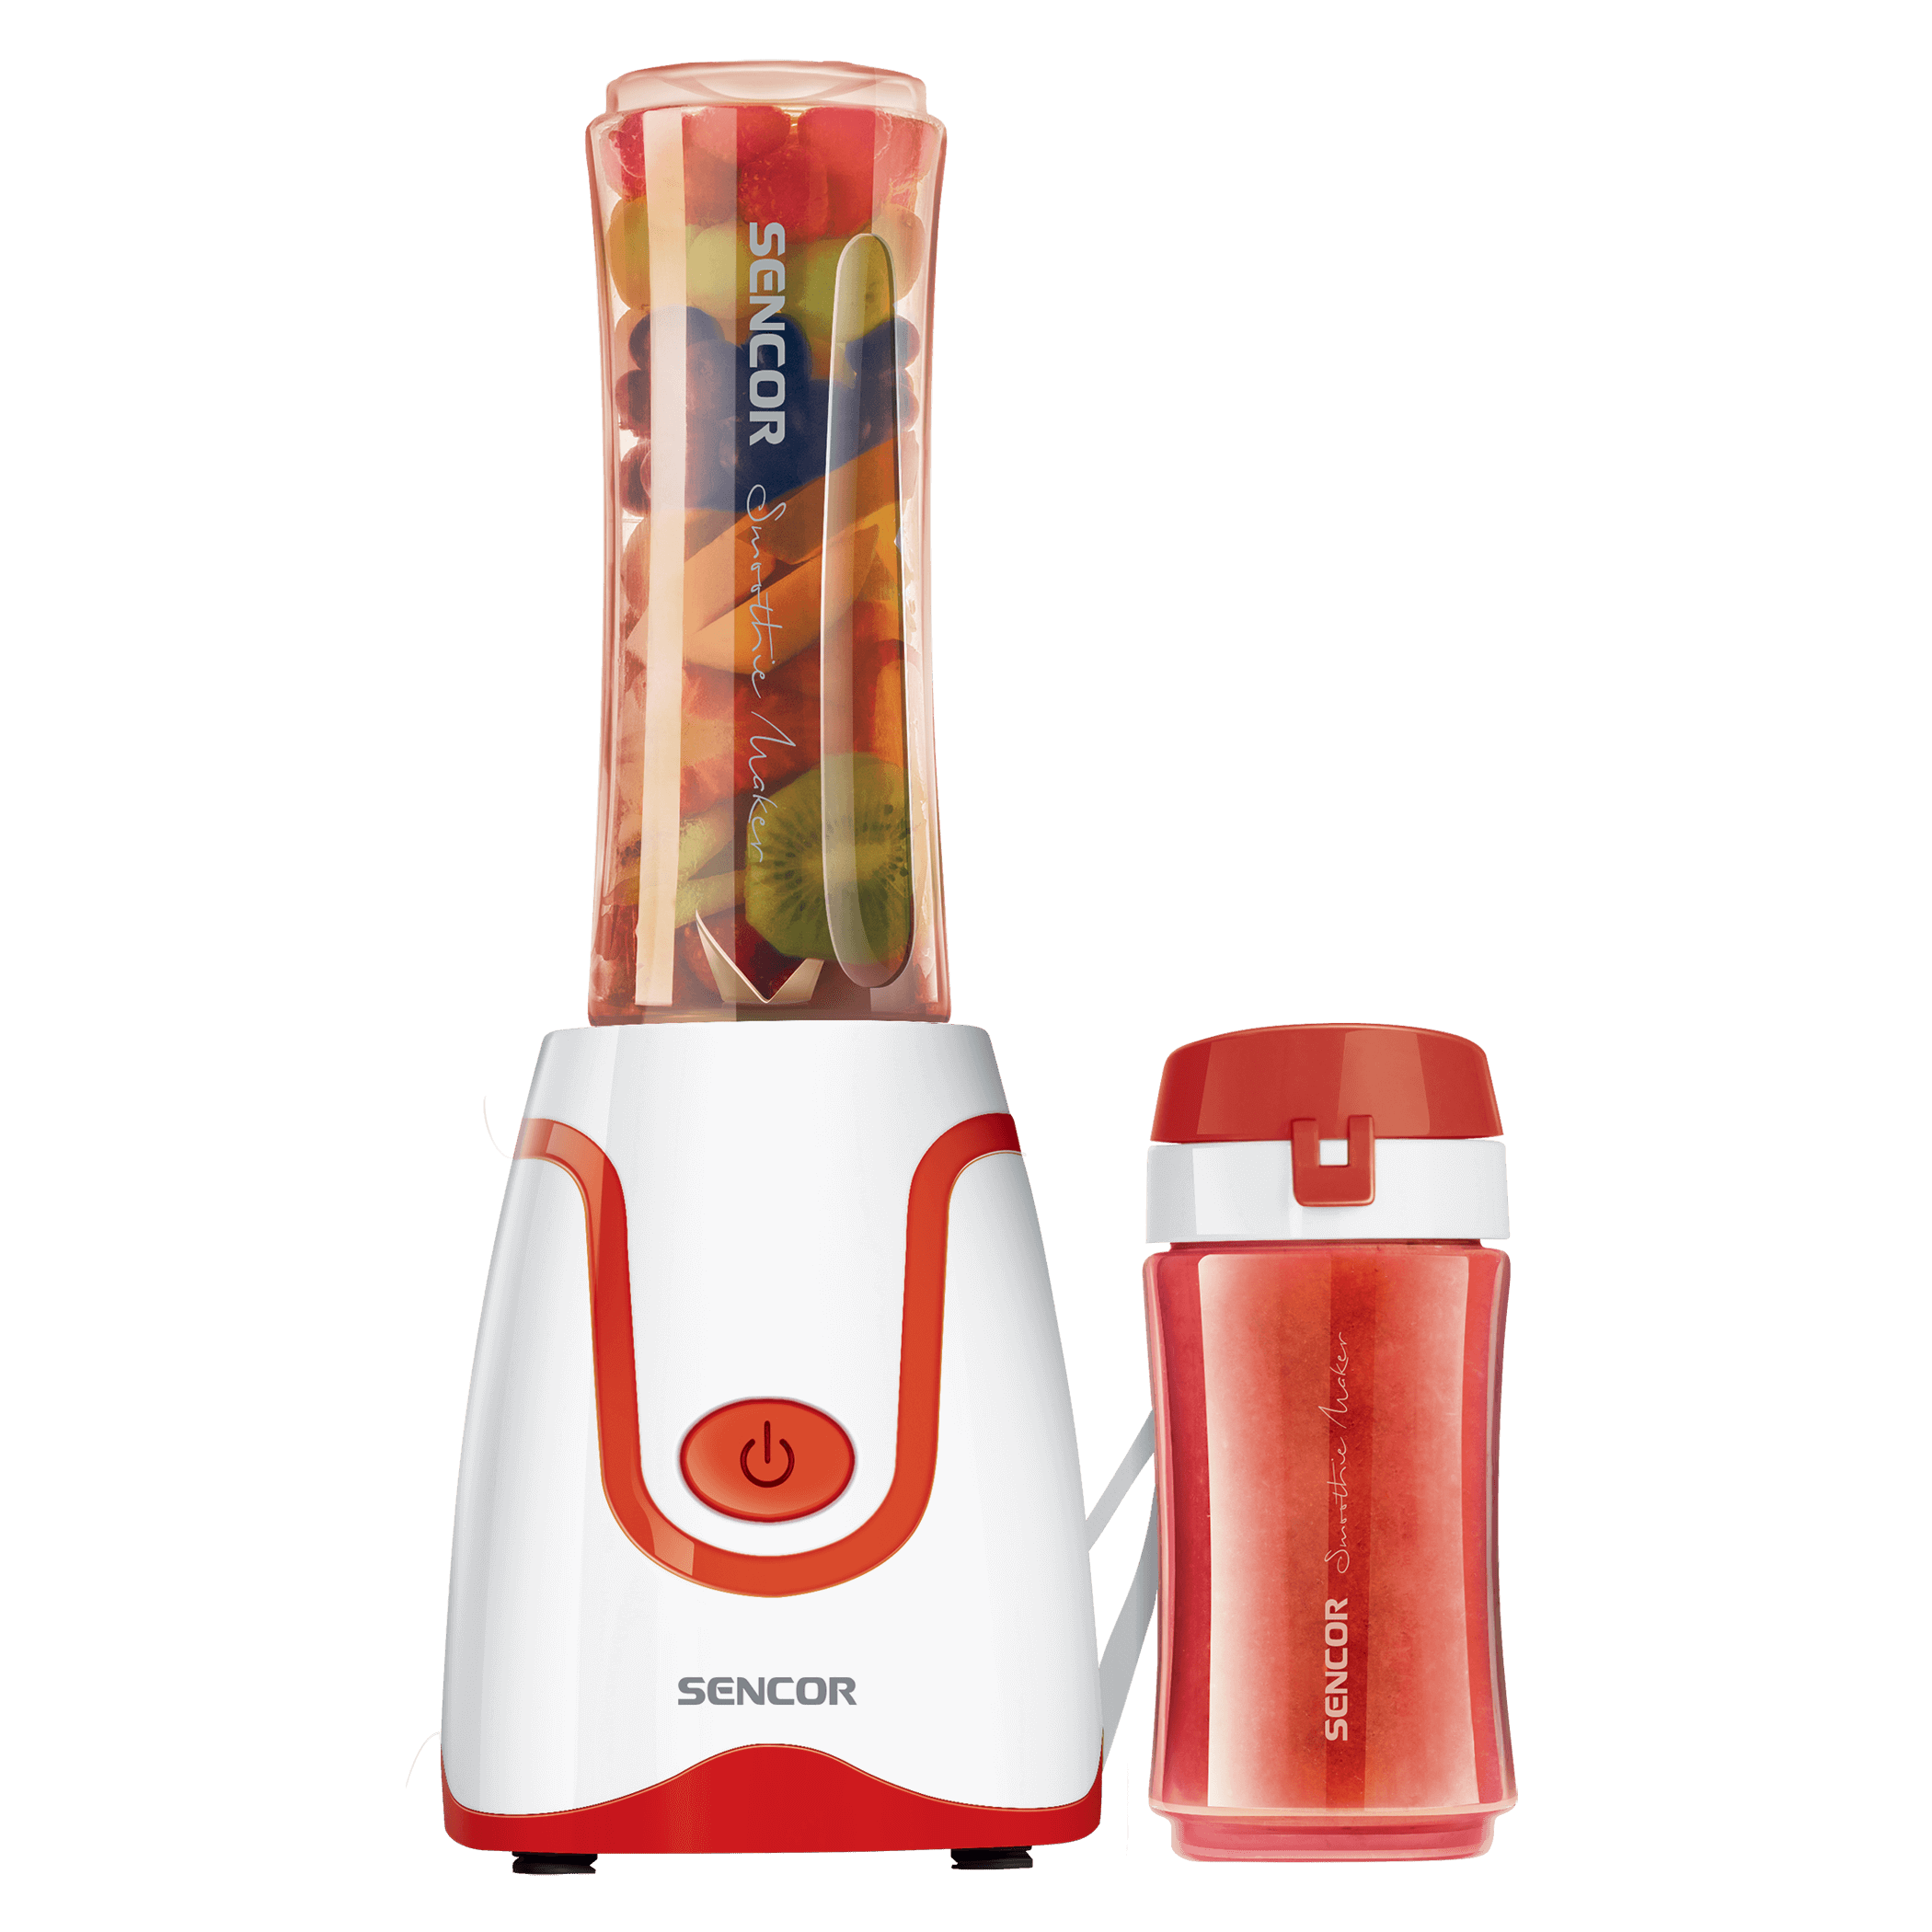 SBL_2214RD_Smoothie_maker_SENCOR.png